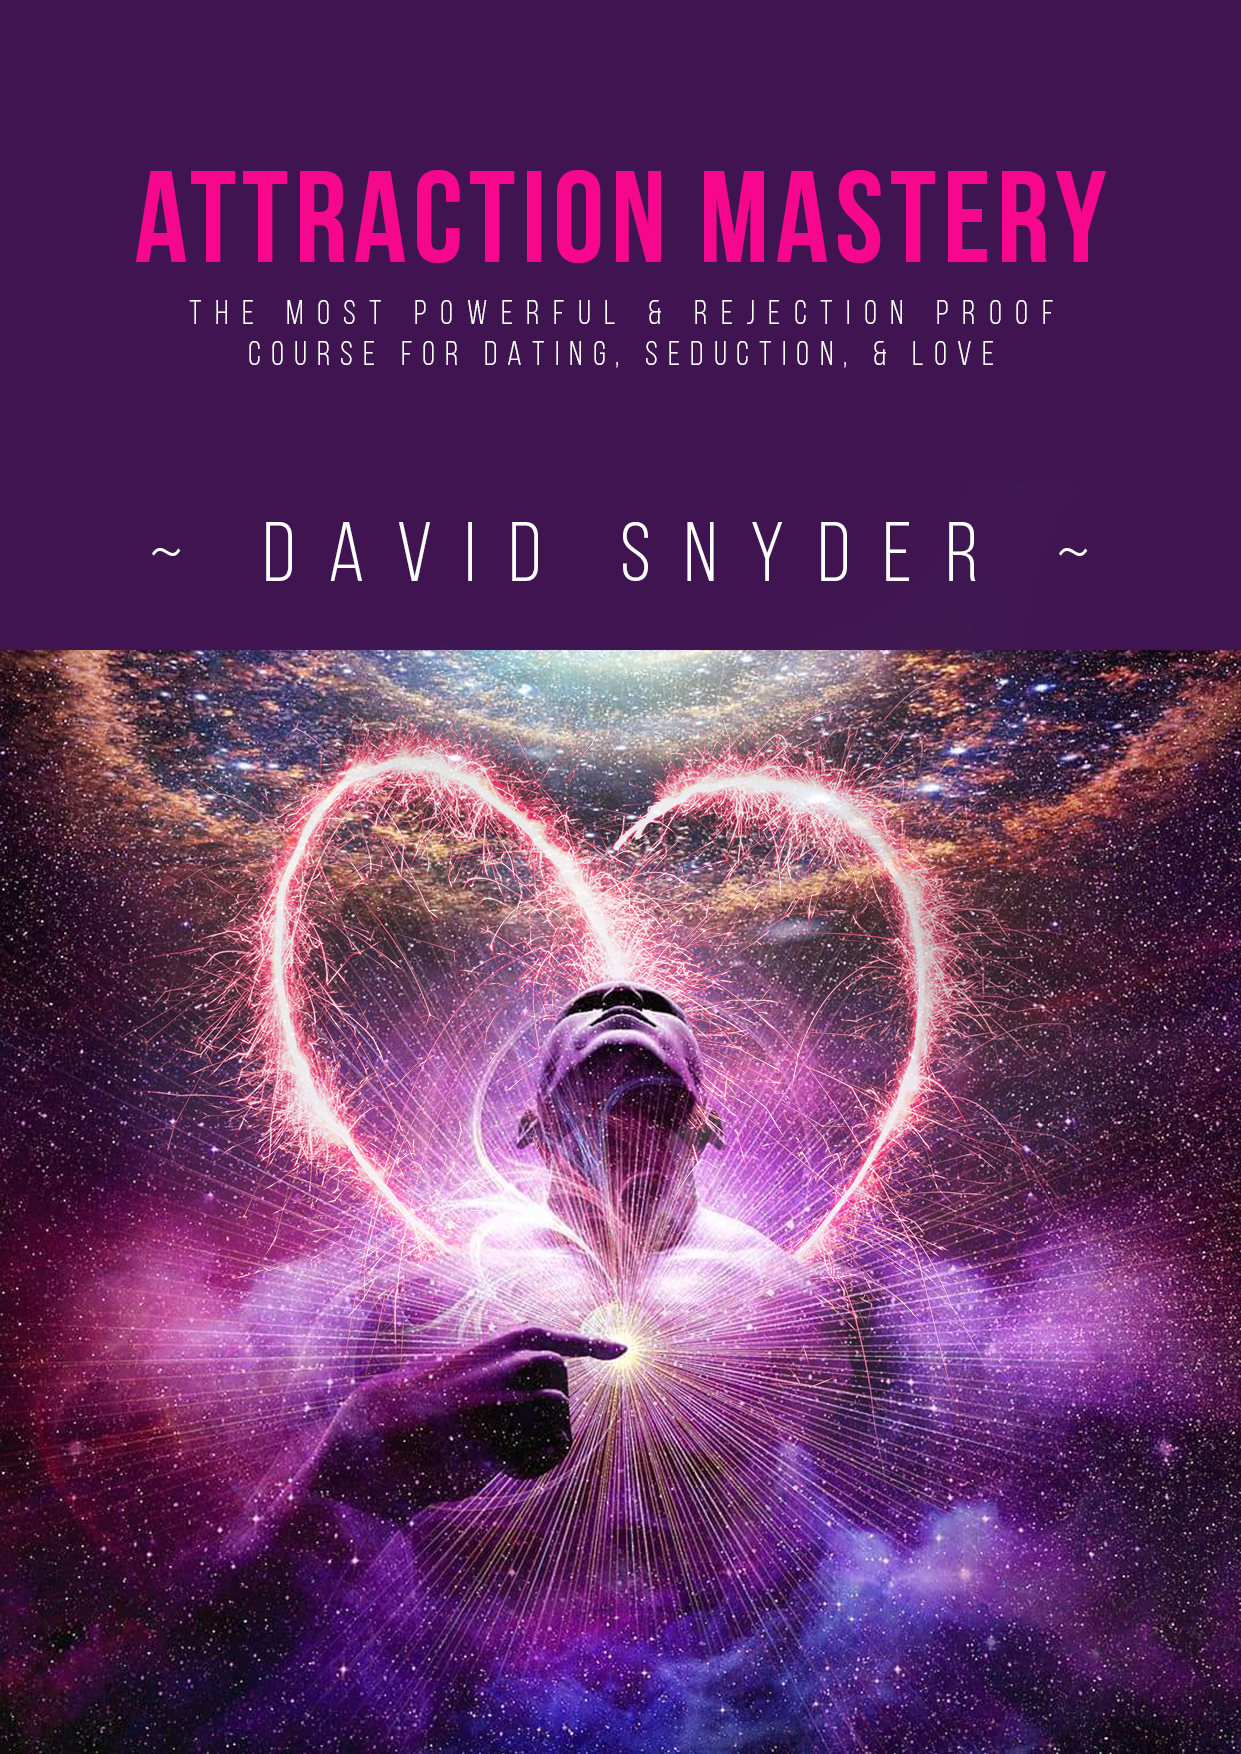 Attraction Mastery 2021 by David Snyder